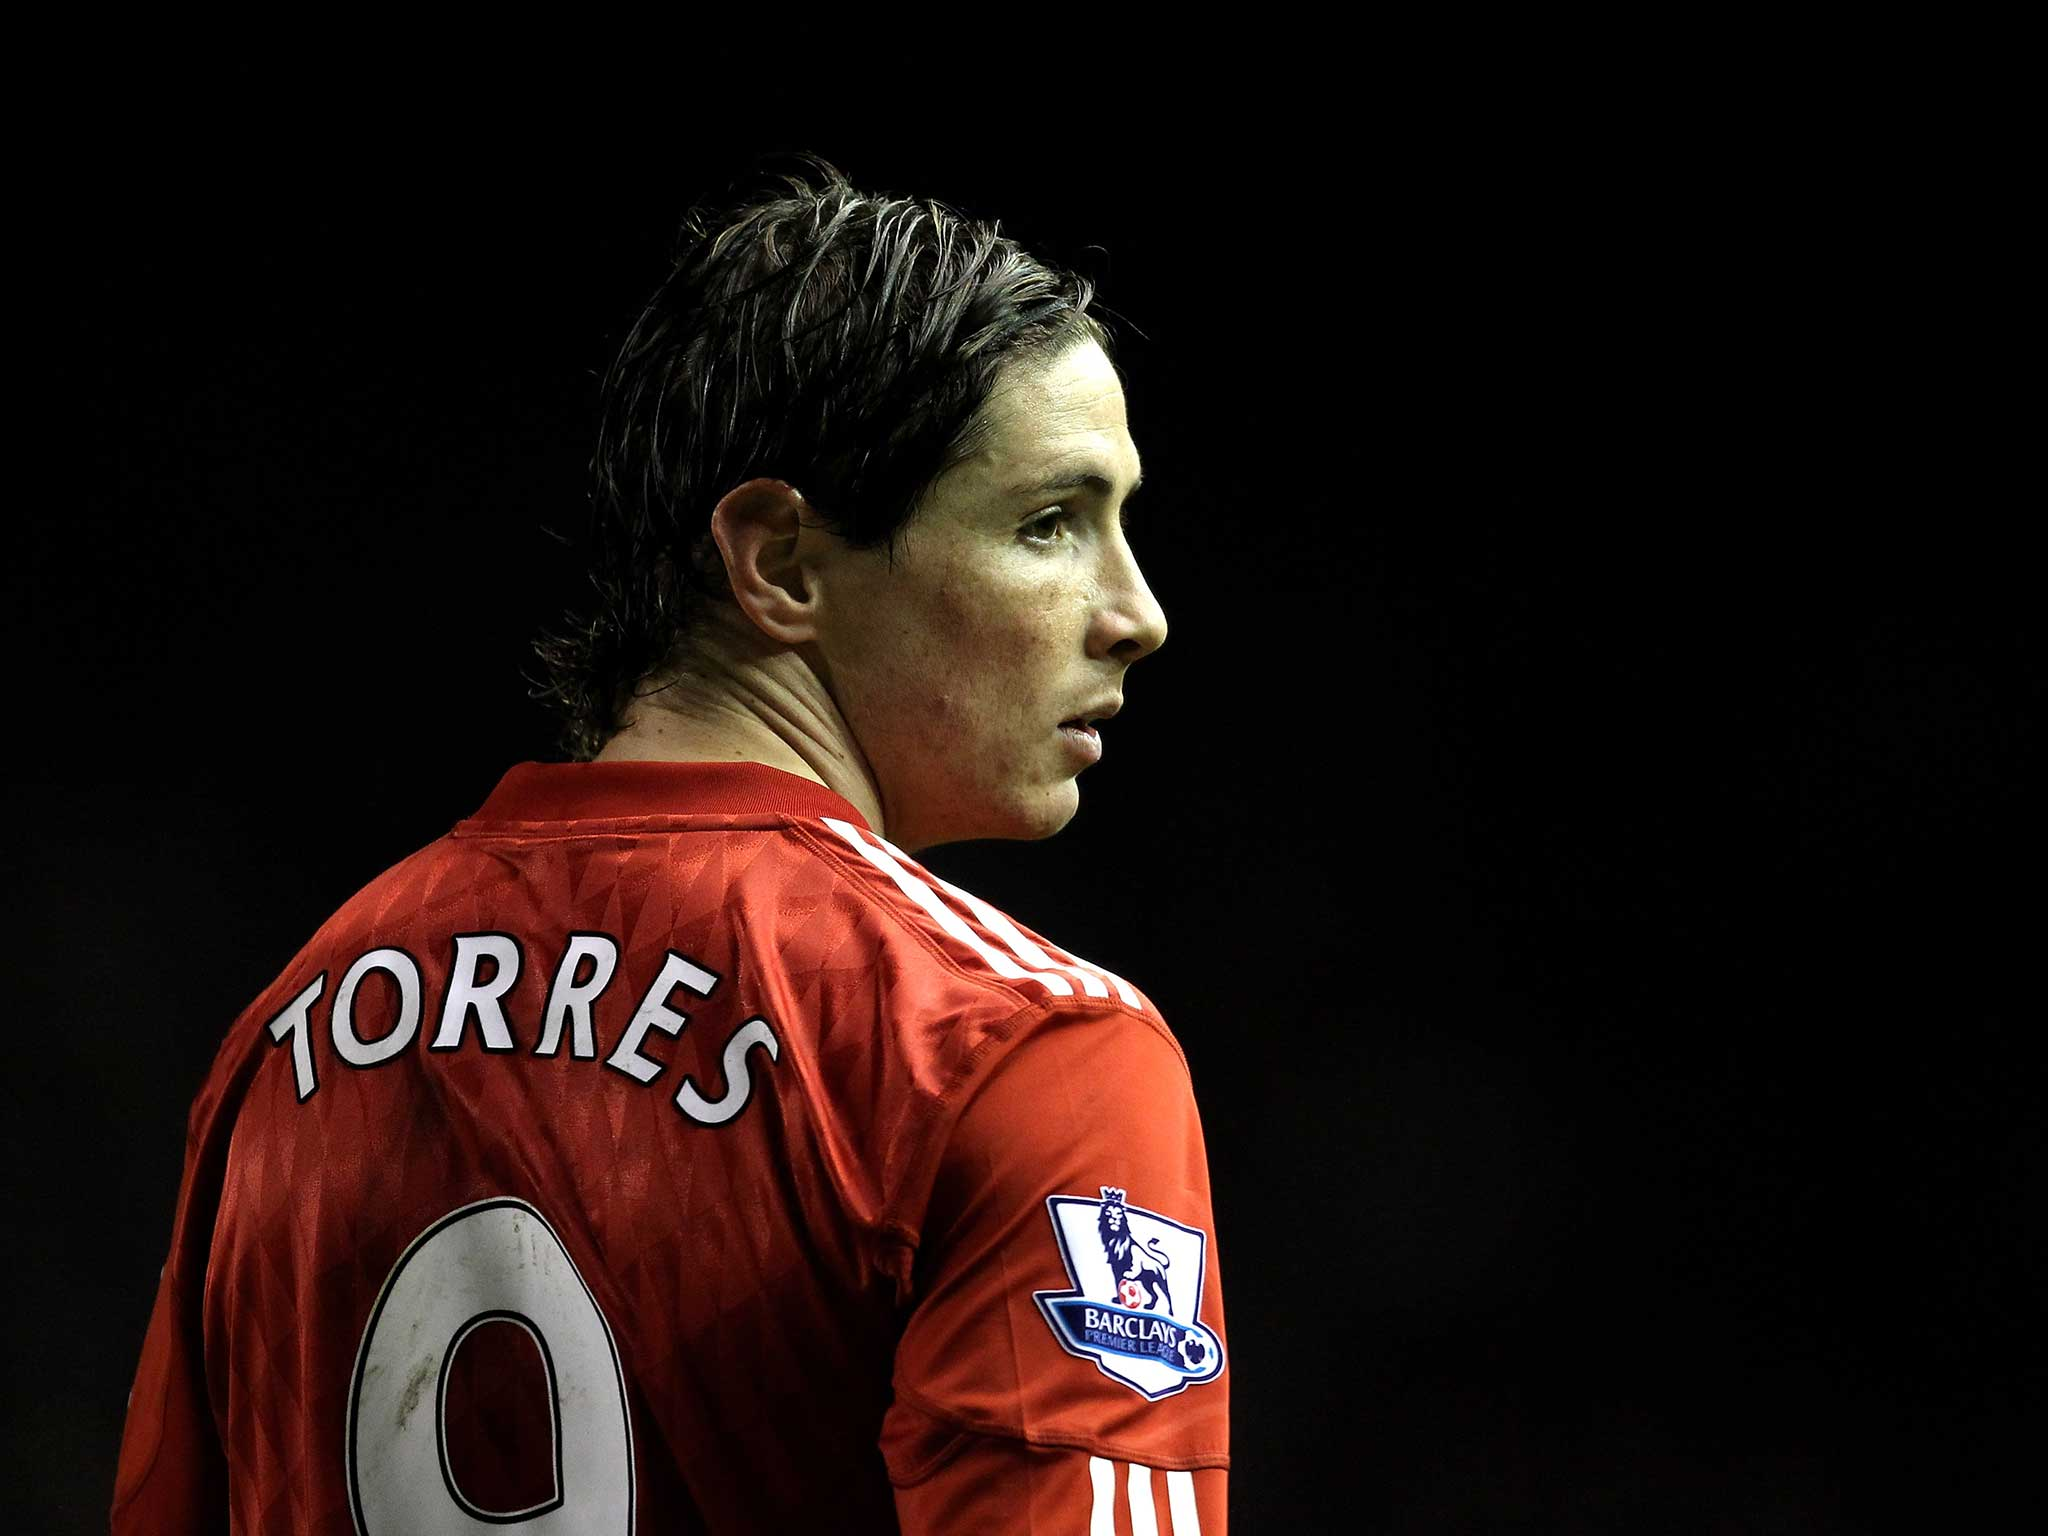 Liverpool news: Fernando Torres claims Reds unfairly portrayed him as a 'traitor' after £50m Chelsea switch